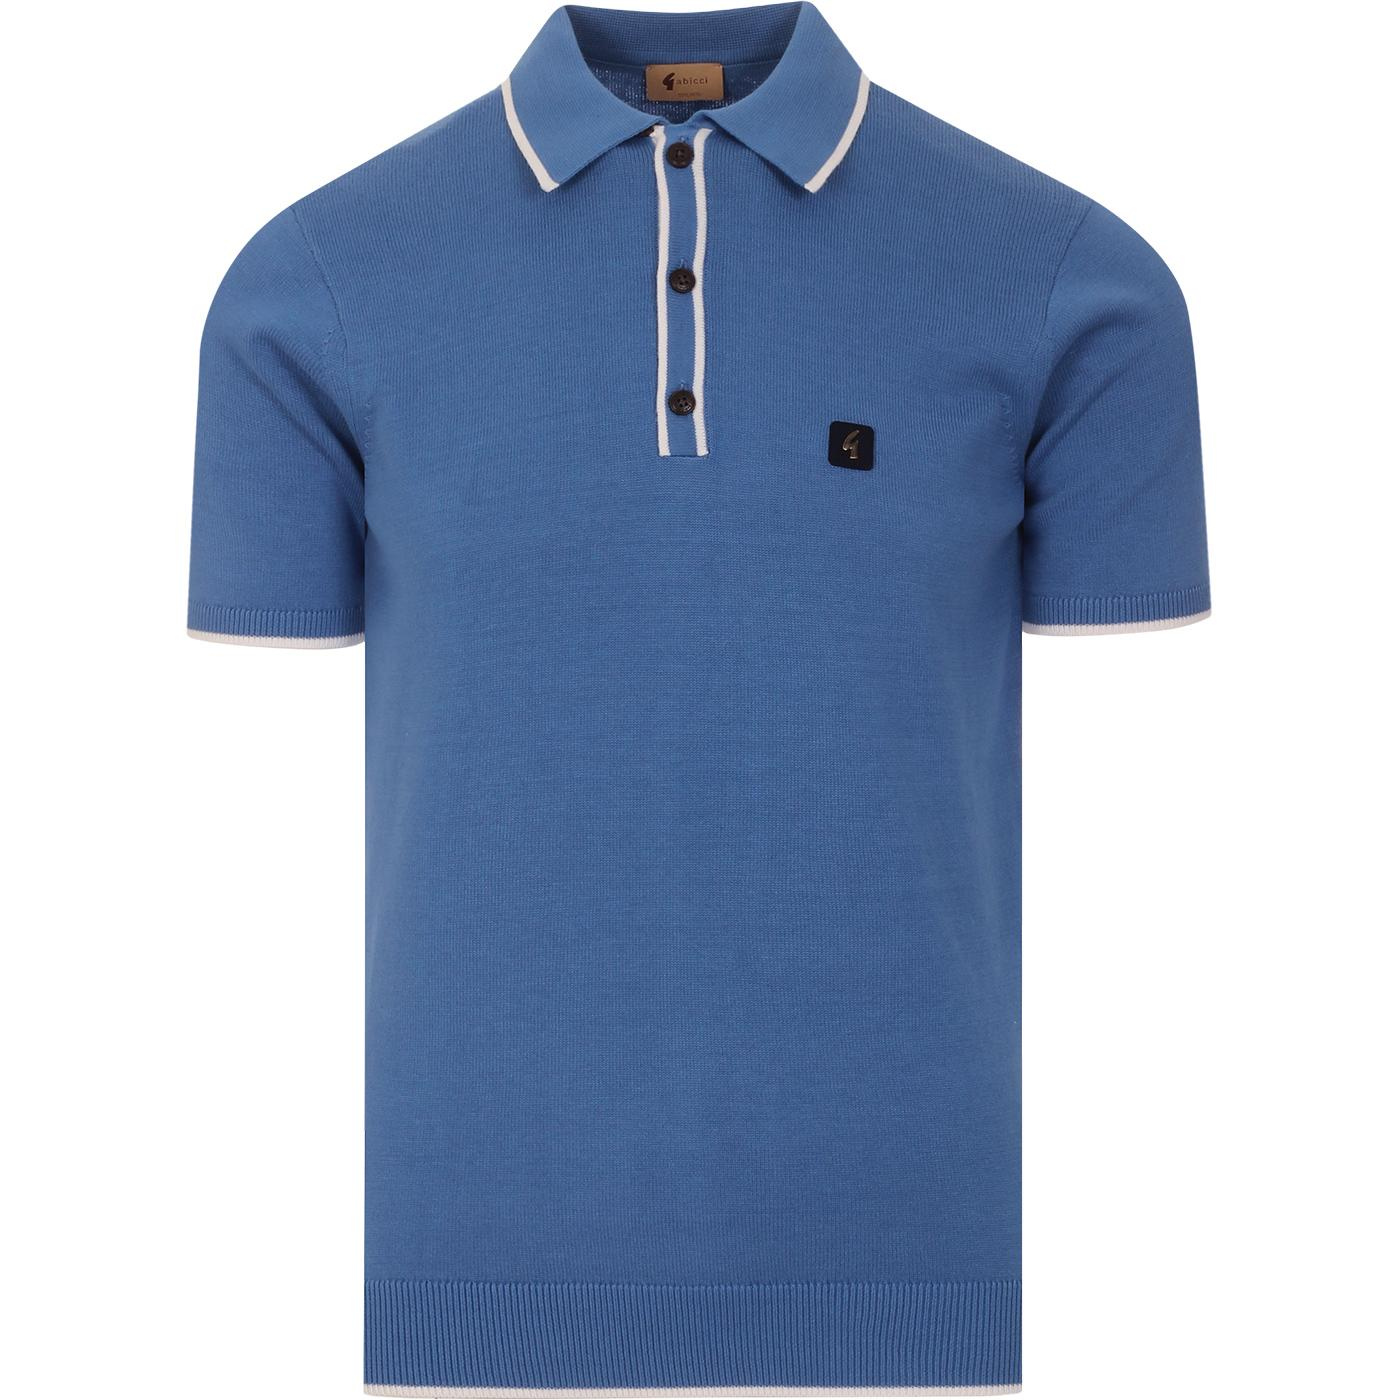 Lineker GABICCI VINTAGE Tipped Knit Polo CAROLINA